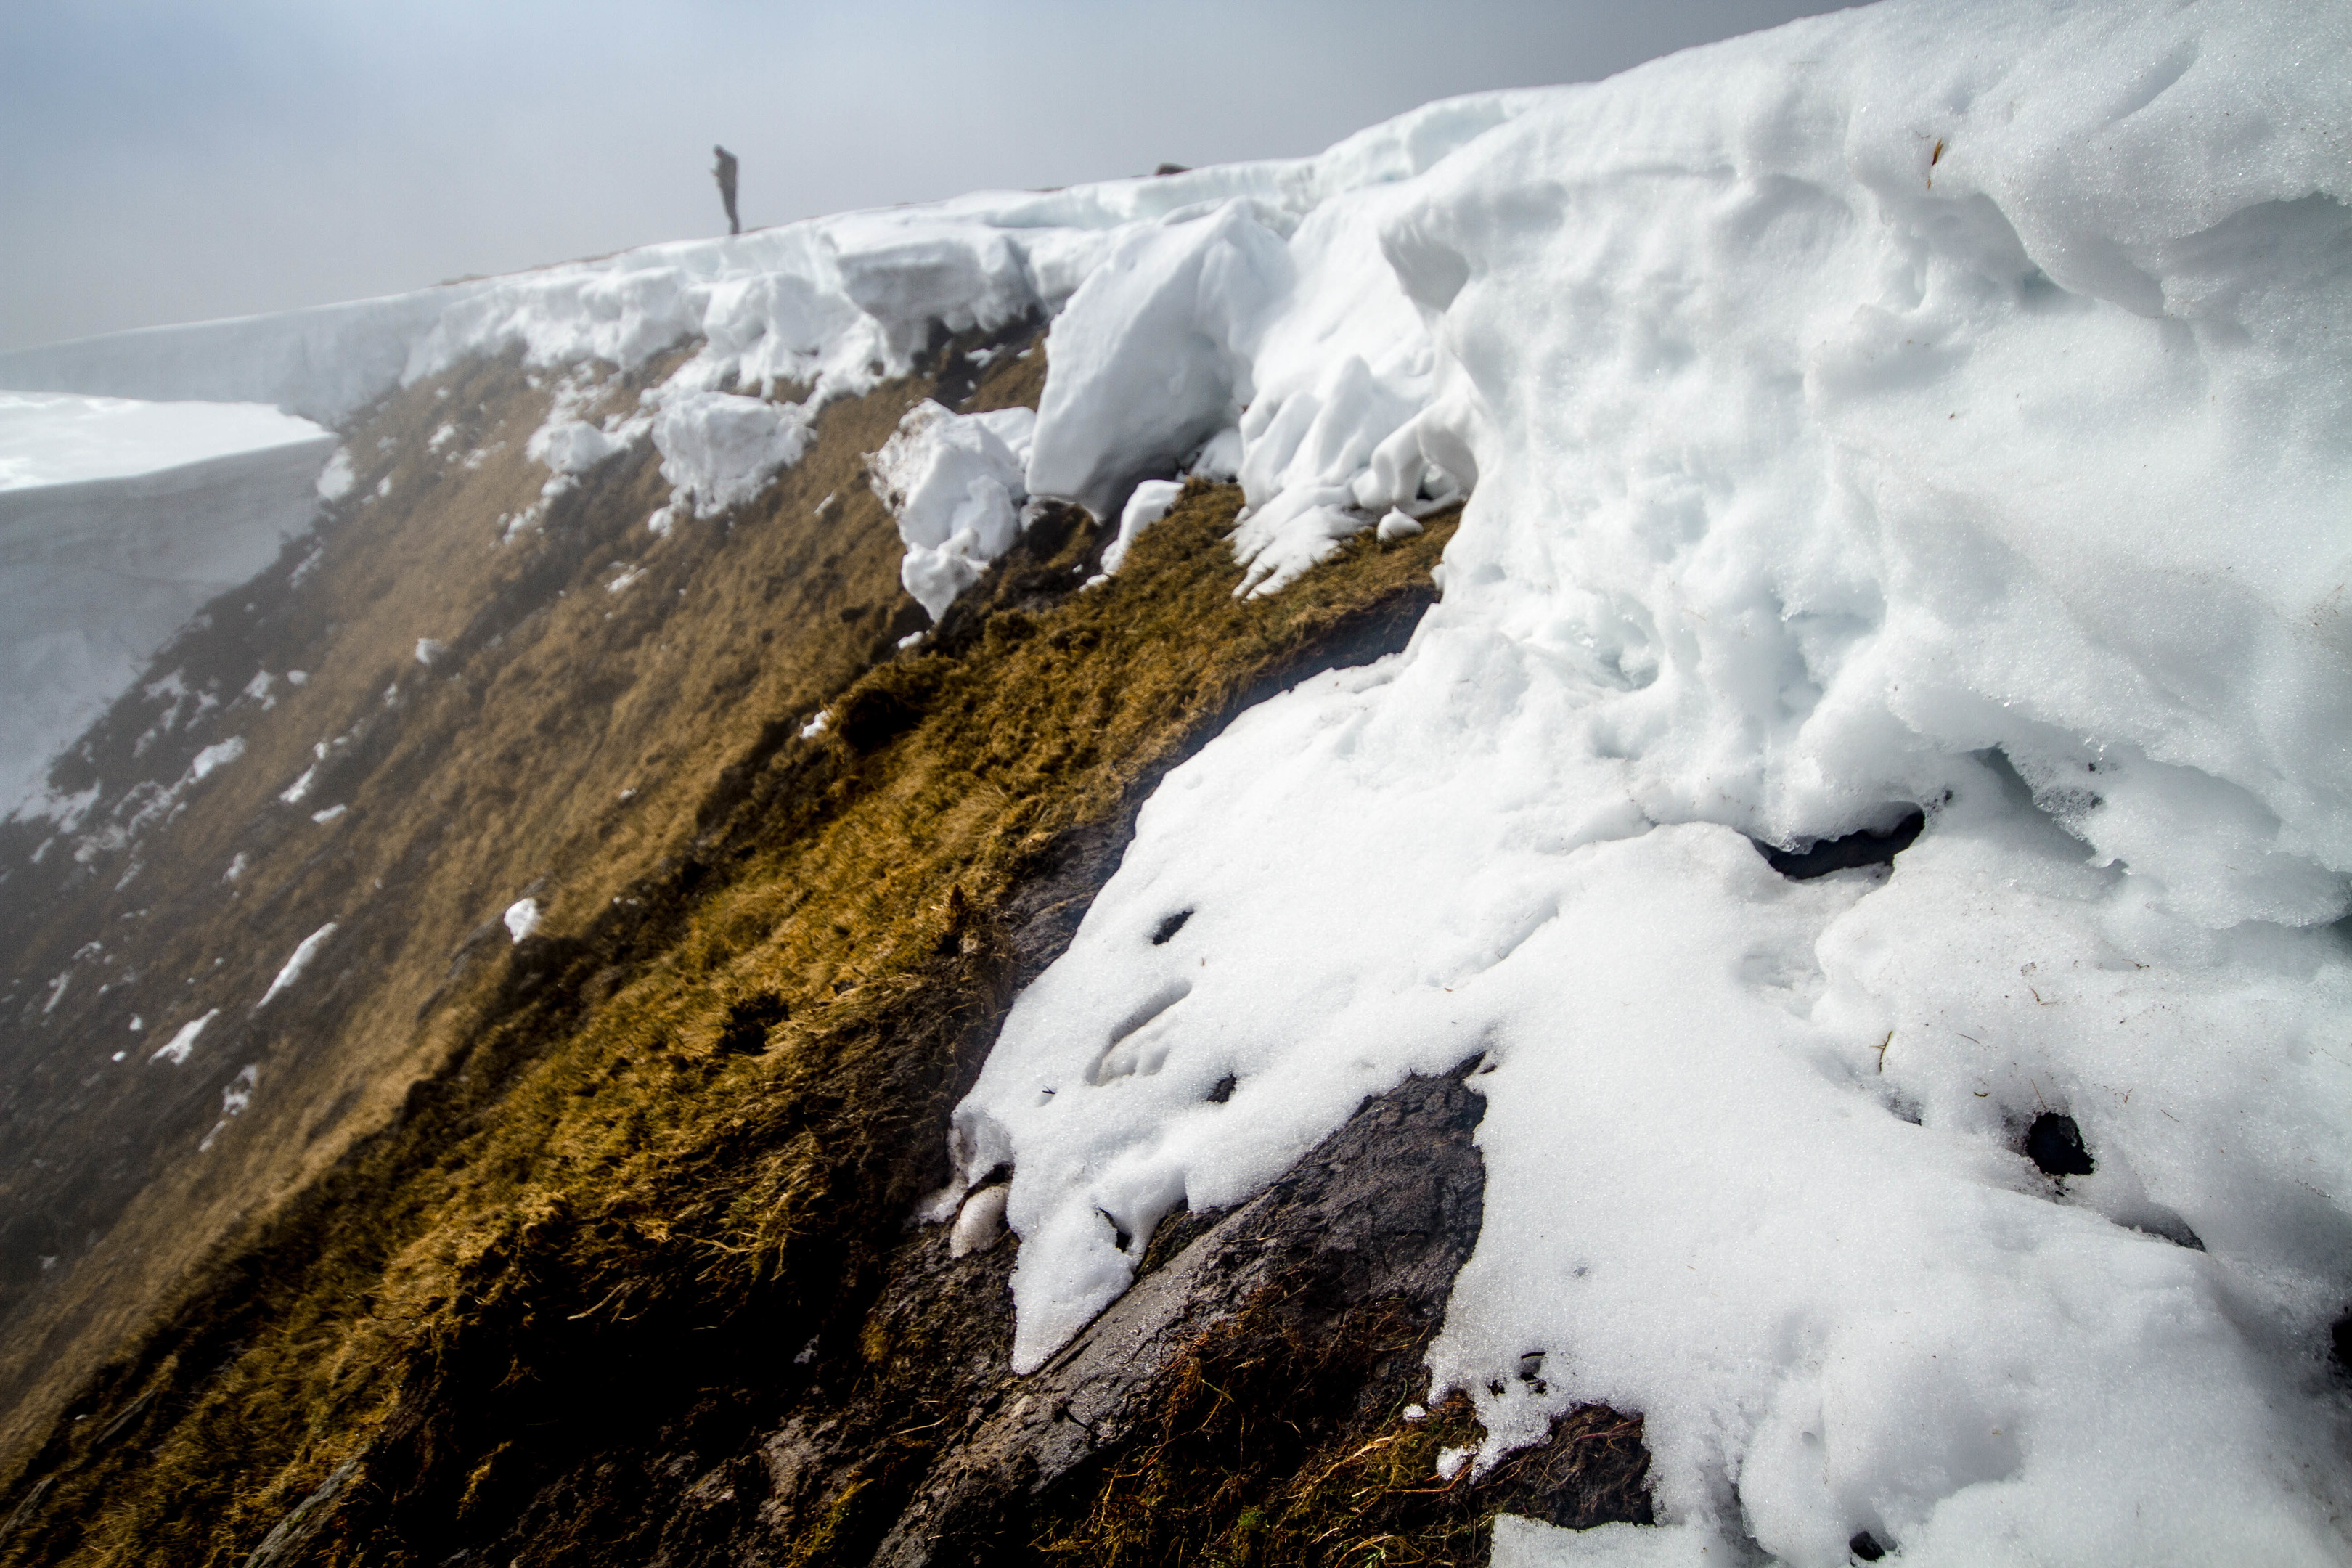 The avalanche was so severe that it completely removed snowcover, in some places metres deep, from the mountainside.